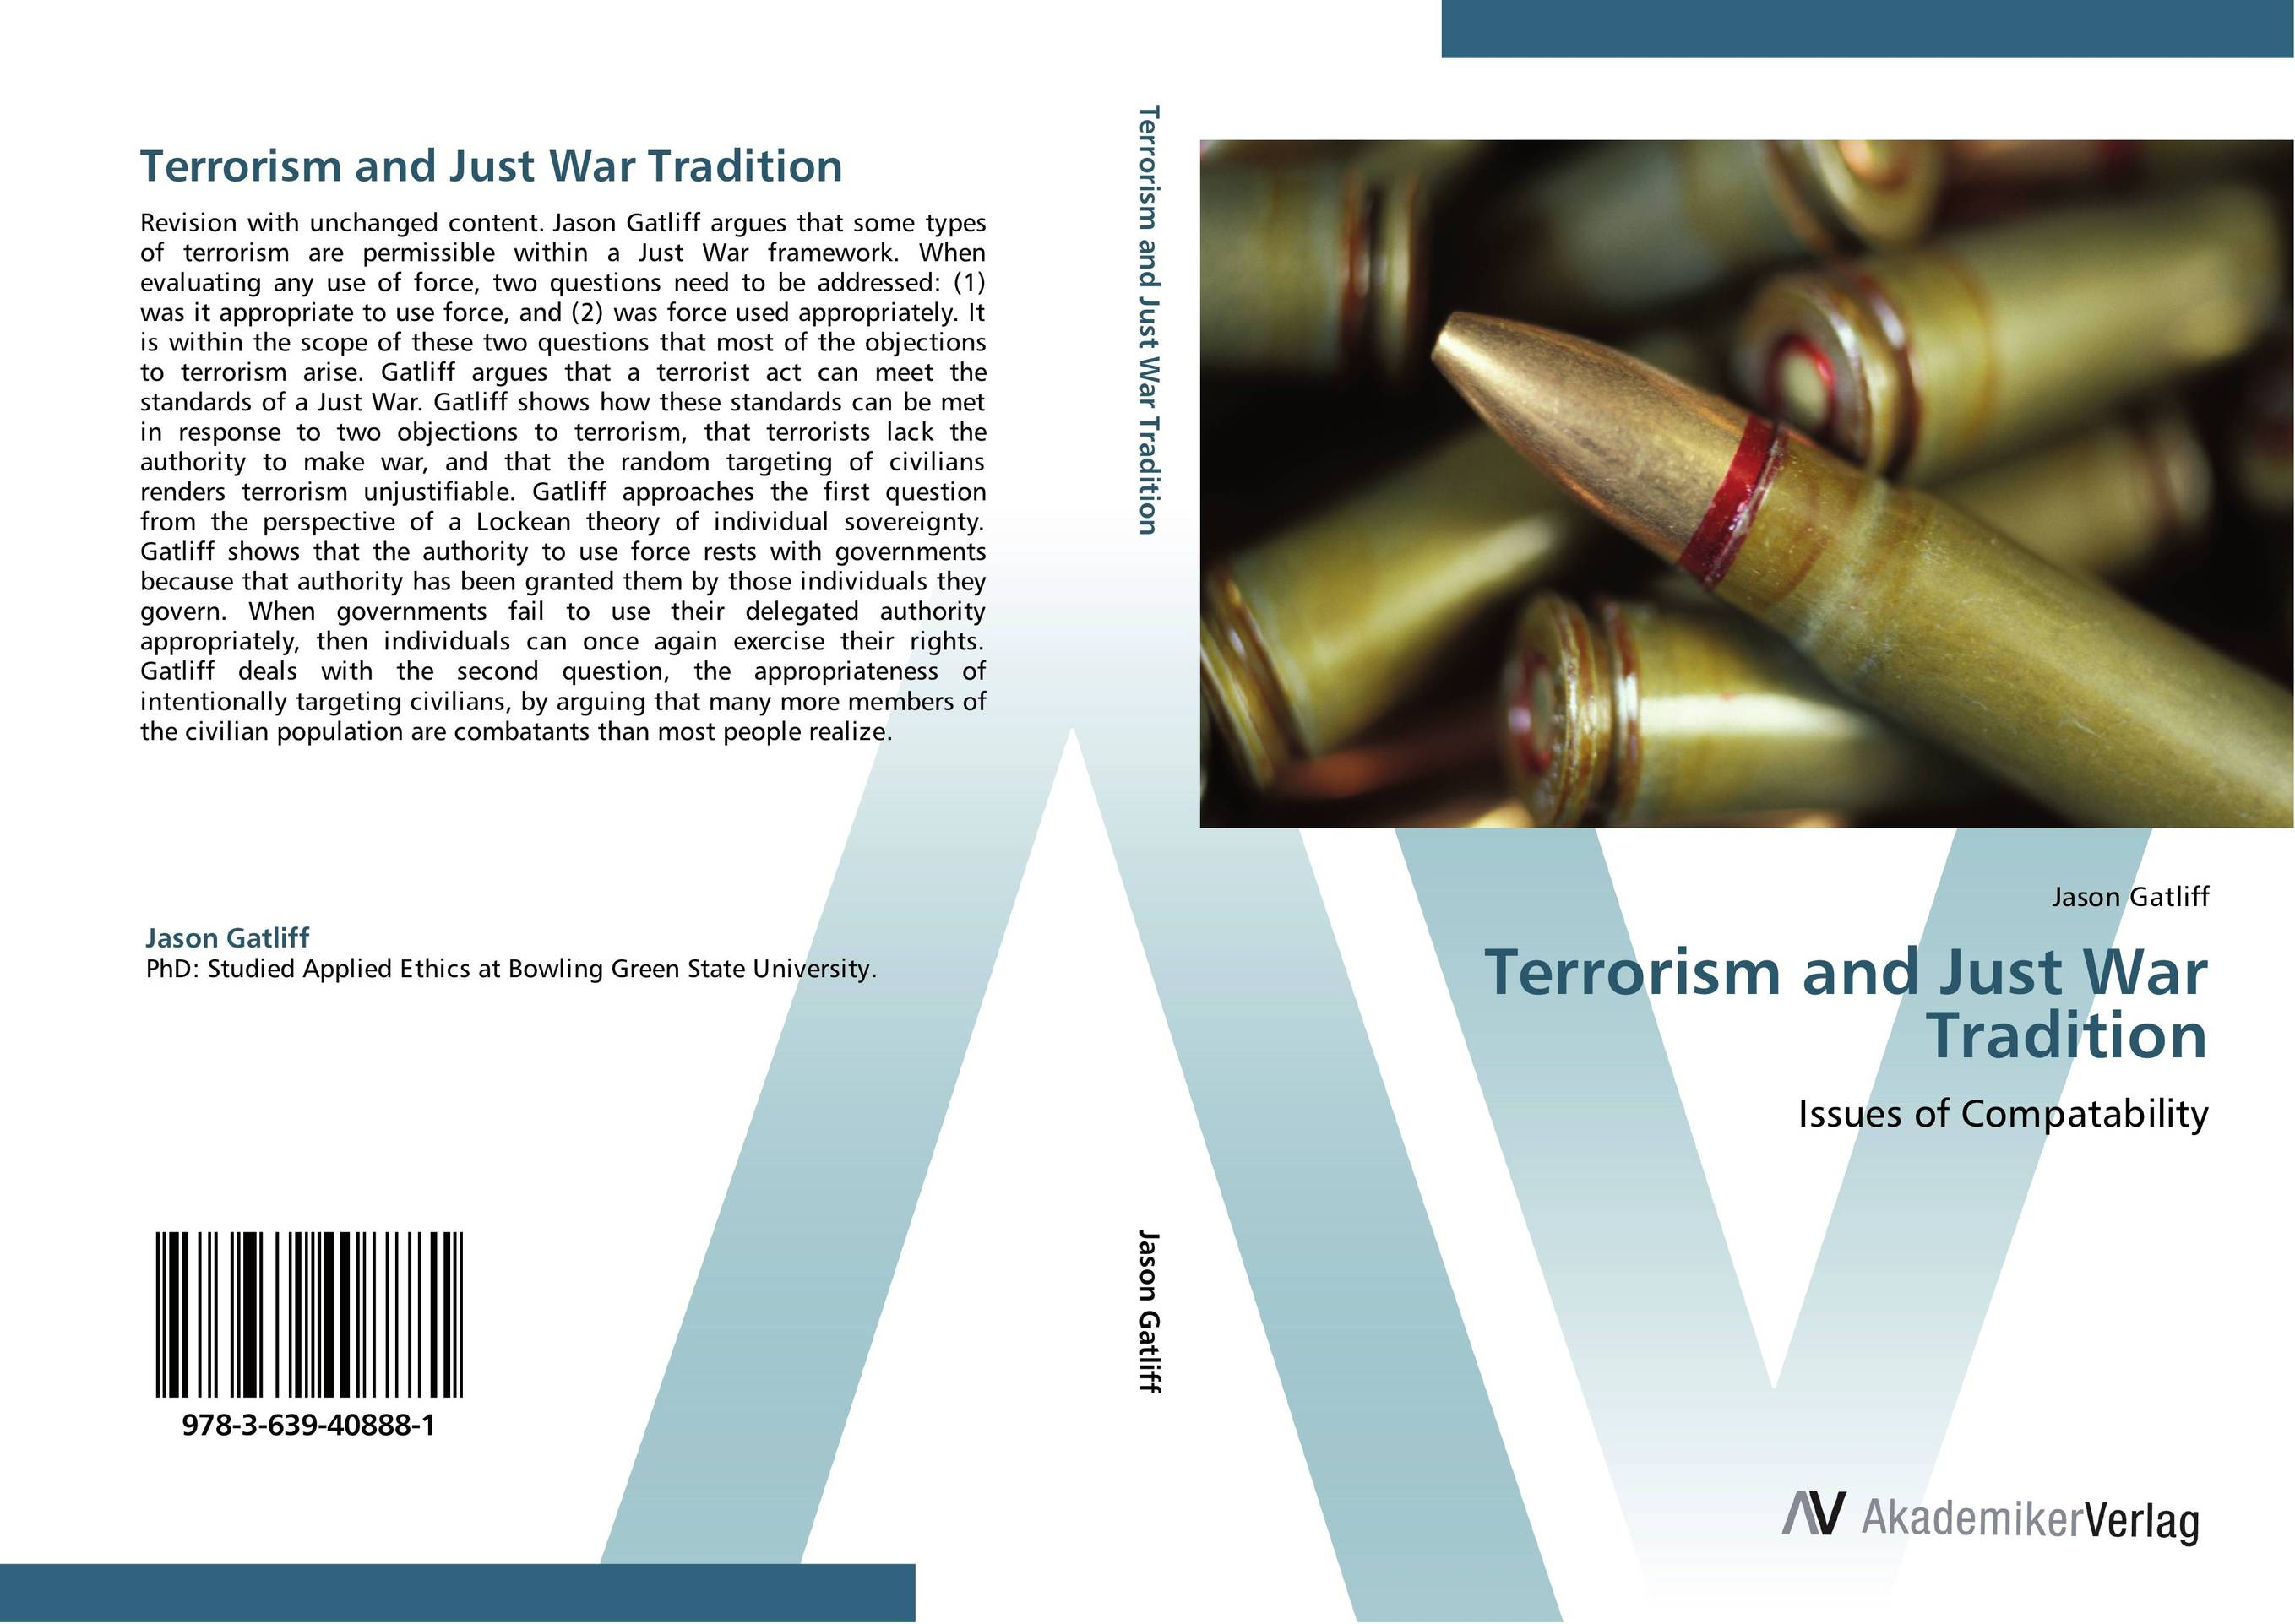 Terrorism and Just War Tradition